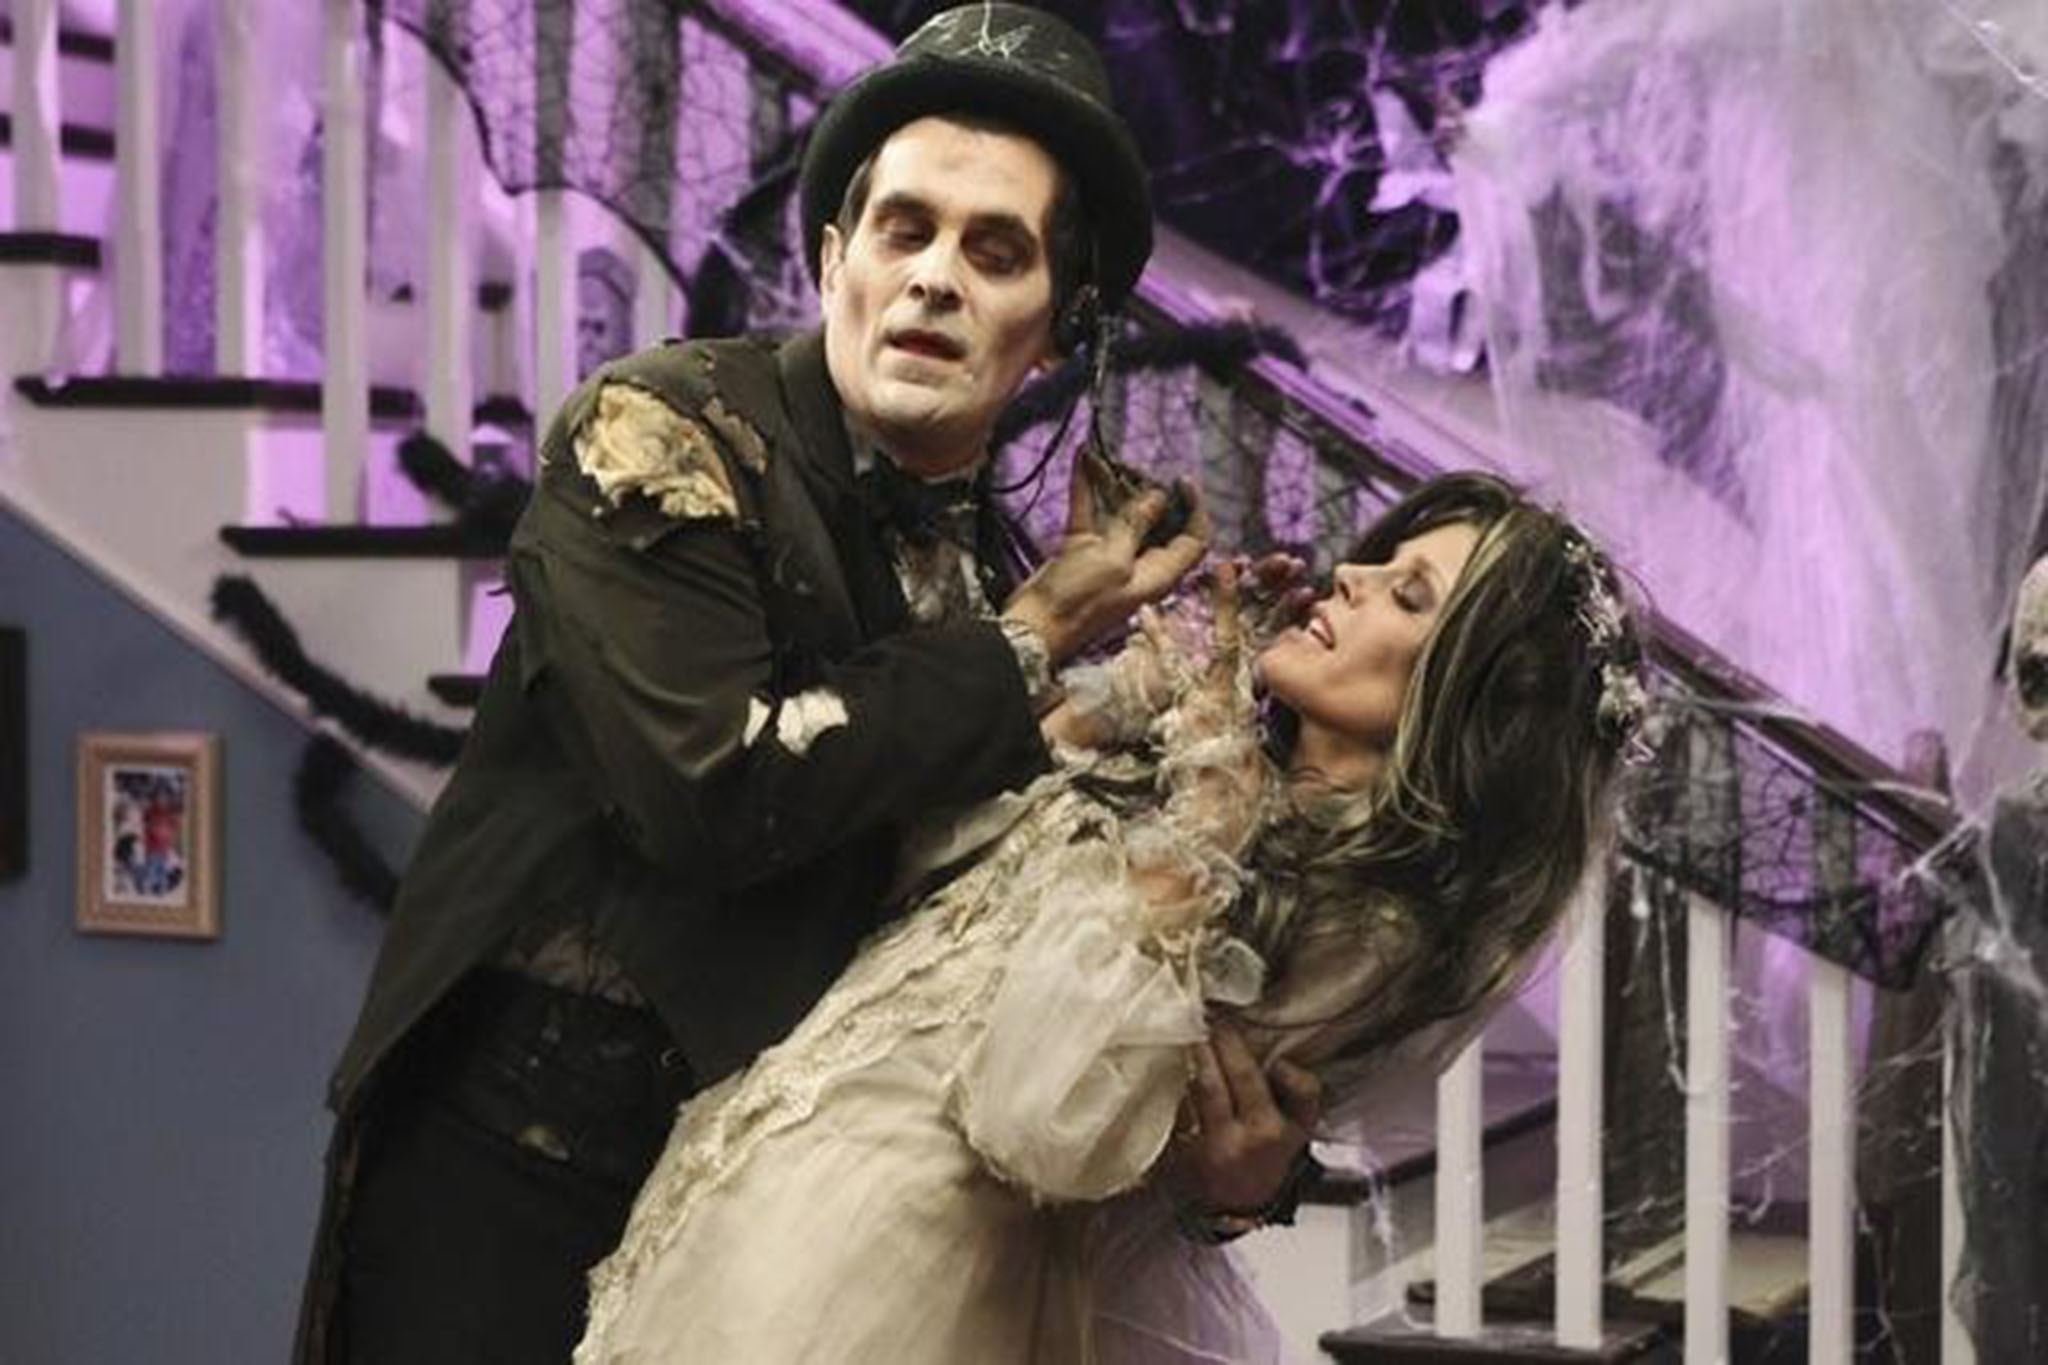 The best Halloween specials of all time